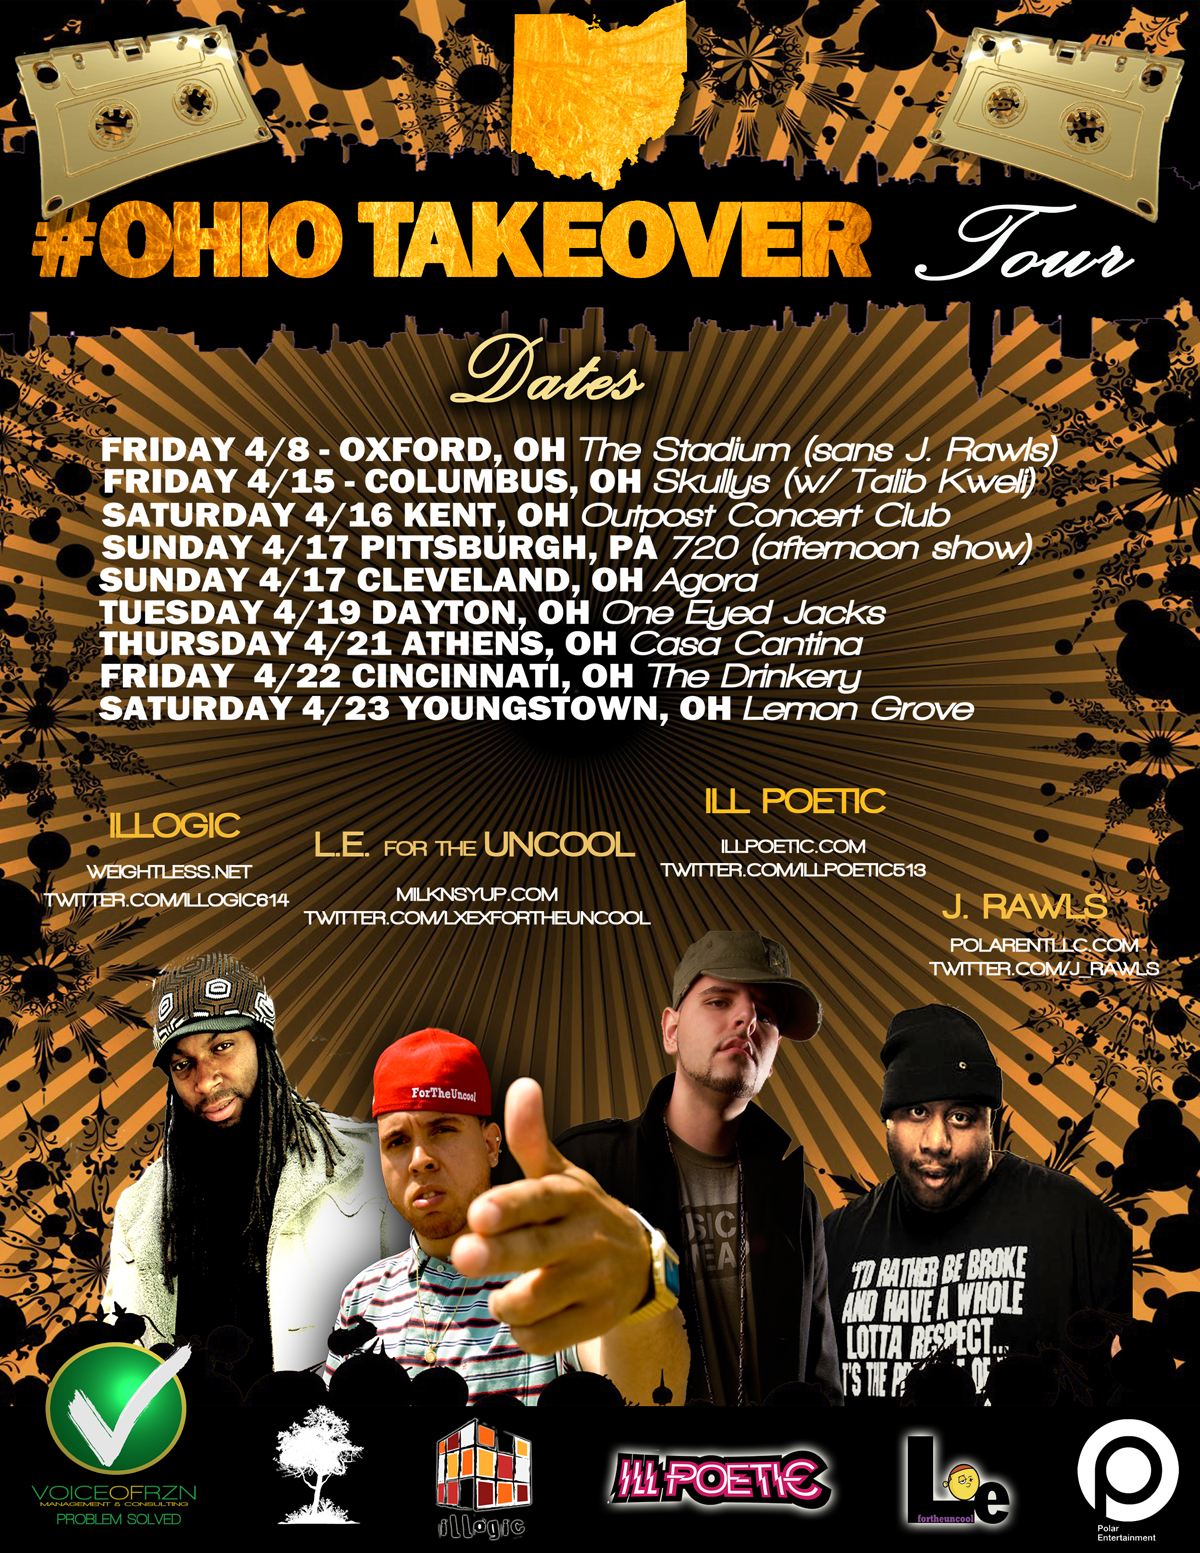 #OhioTakeover Tour feat. J. Rawls, Illogic, Ill Poetic and LxE For The Uncool starts April 8